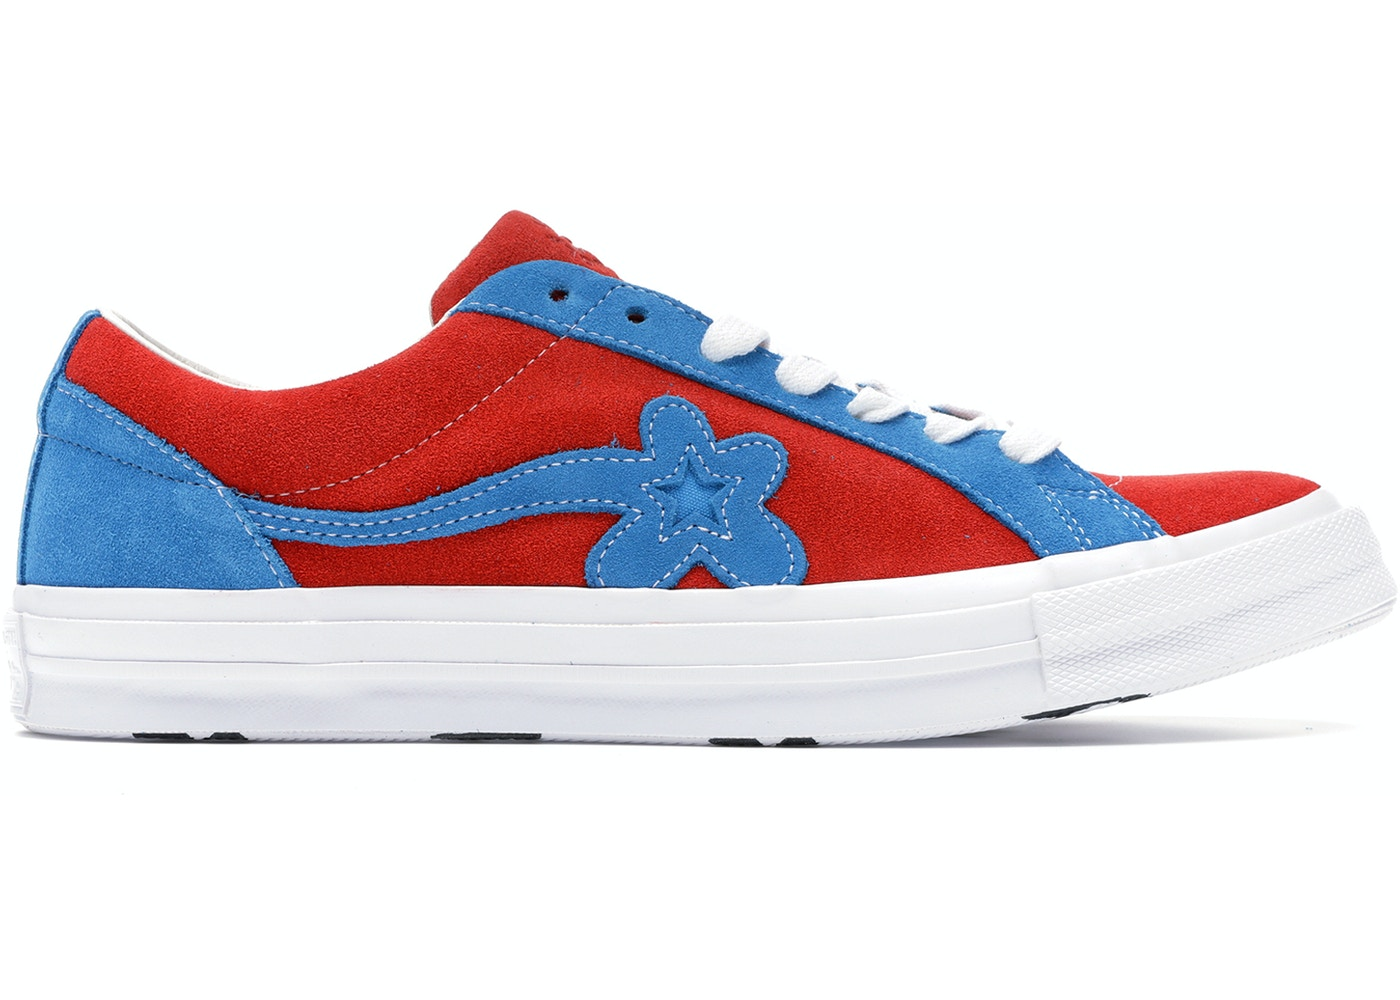 4587abc202f2 Converse One Star Ox Tyler the Creator Golf Le Fleur Red Blue - 162126C converse  x tyler golf le fleur one star blue